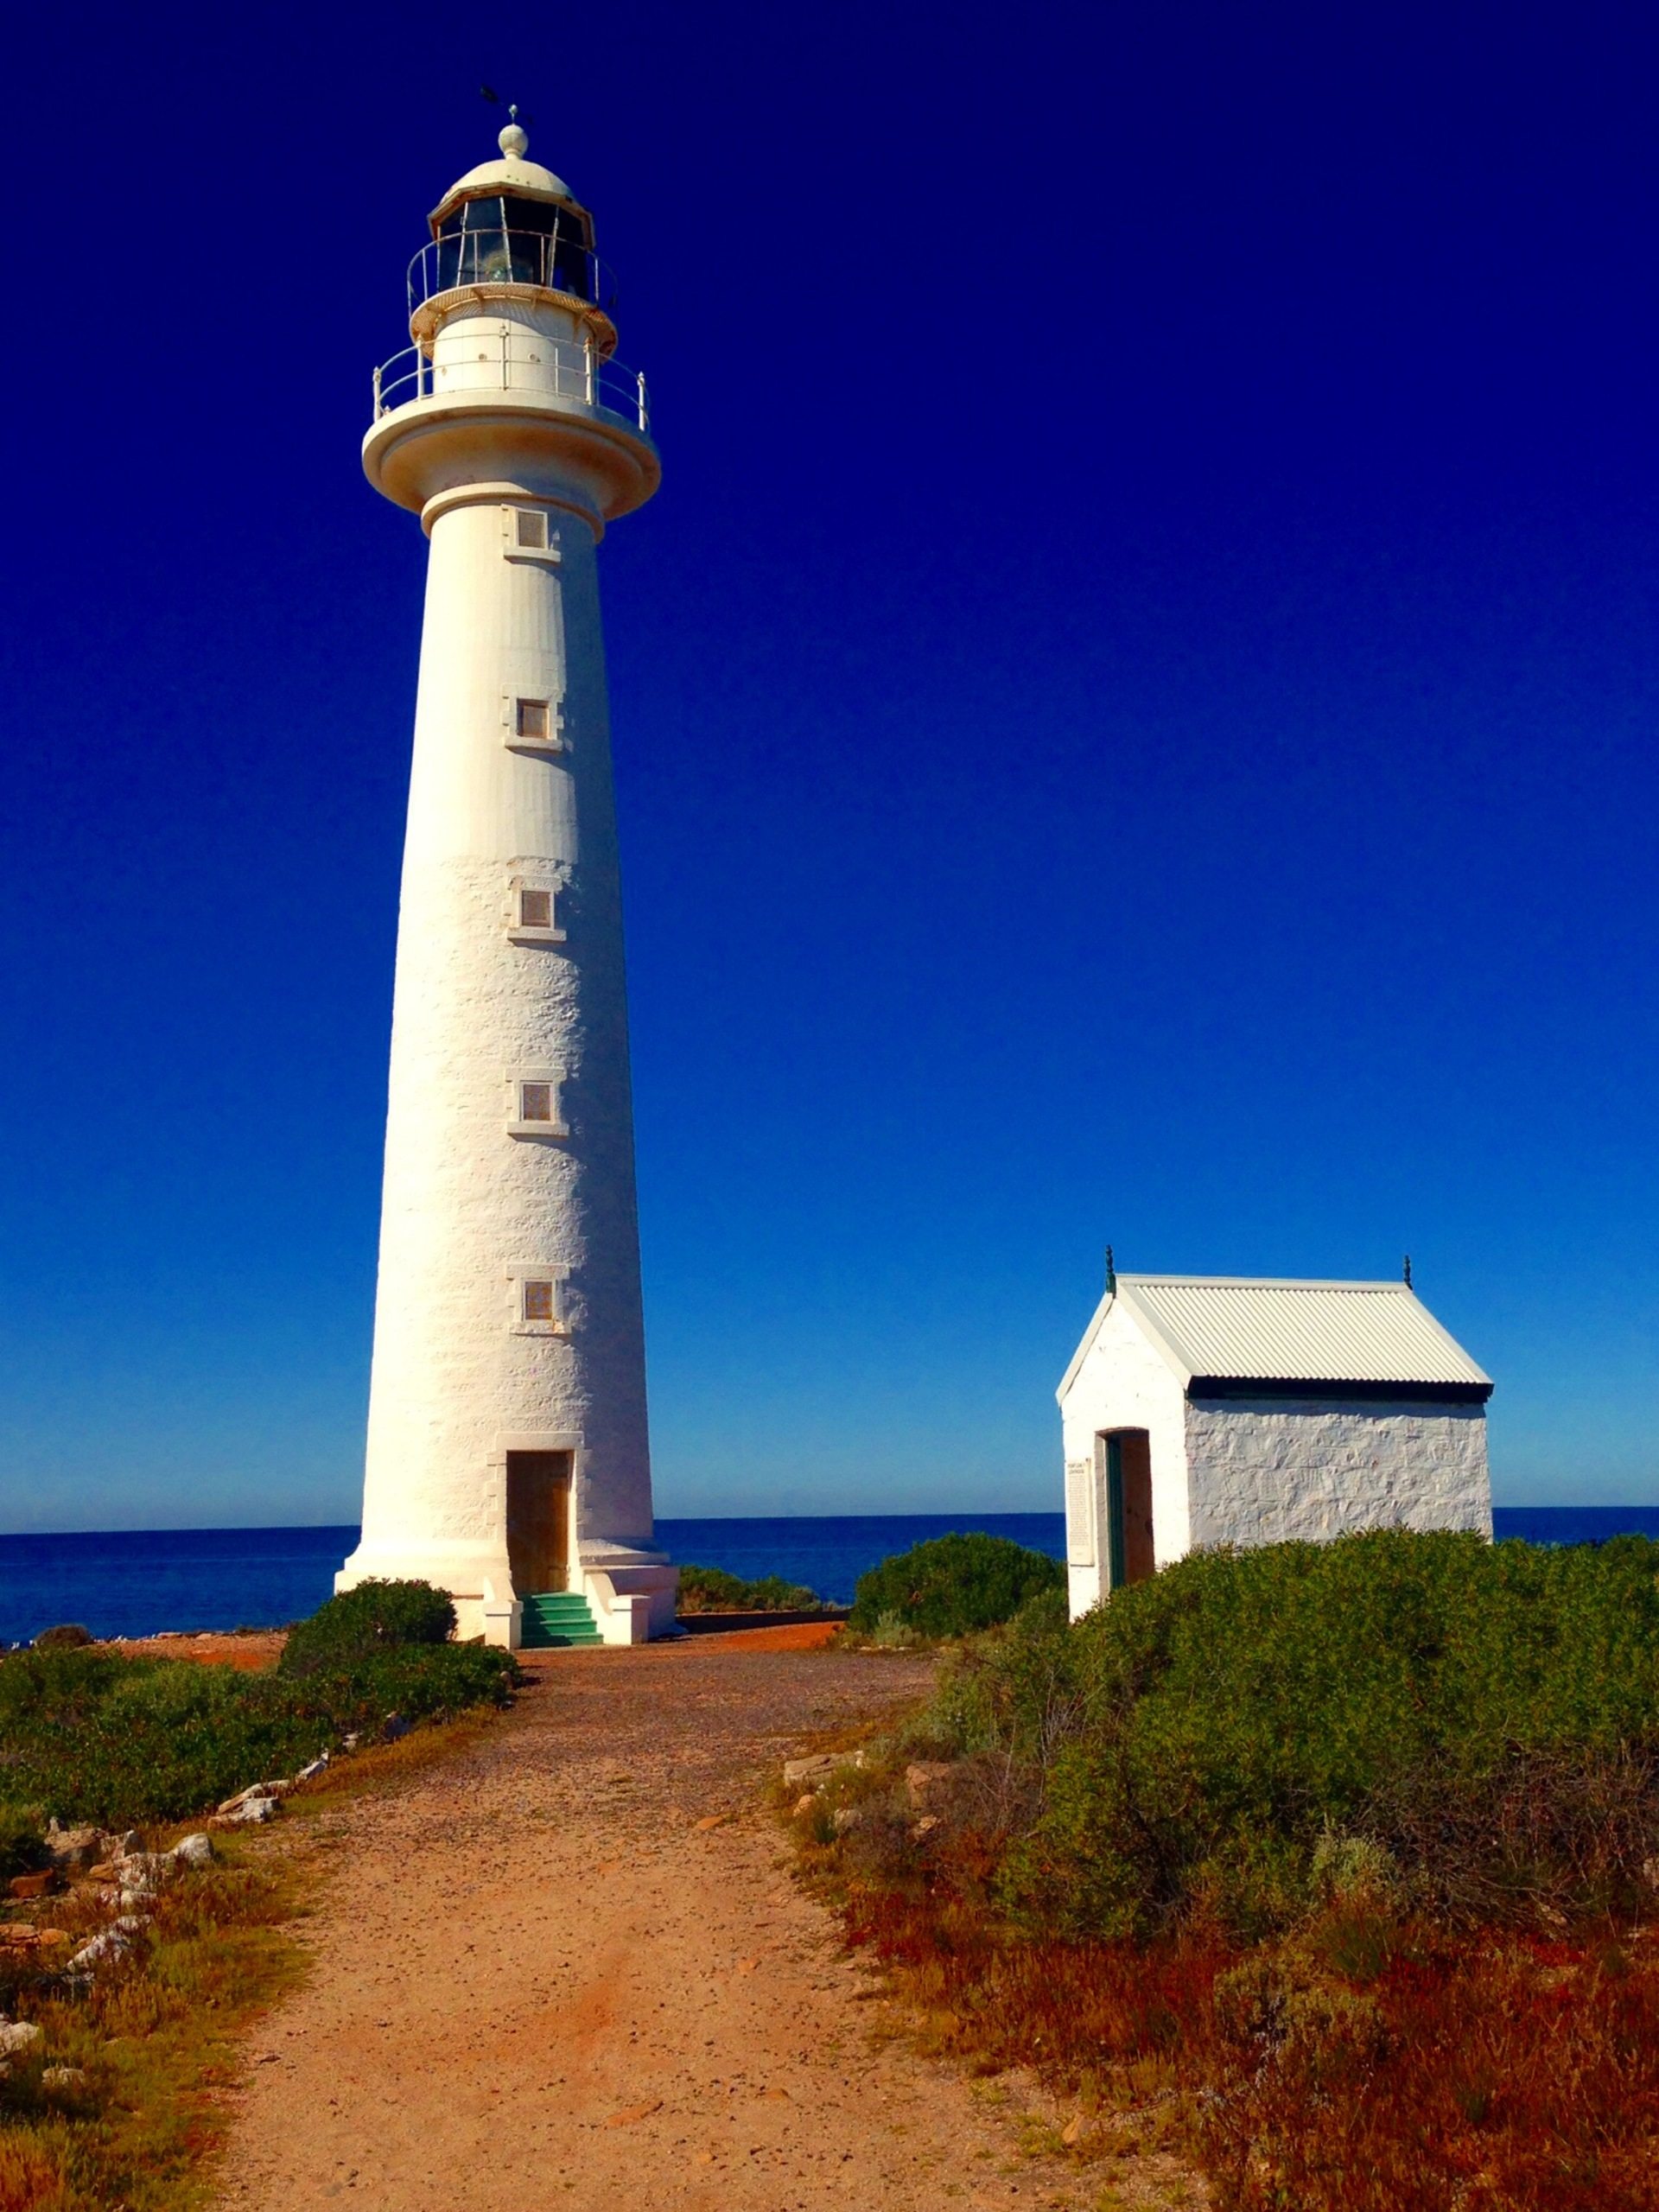 The Point Lowly Lighthouse, Whyalla, South Australia. The Point Lowly Lighthouse on North End of Spencer Gulf